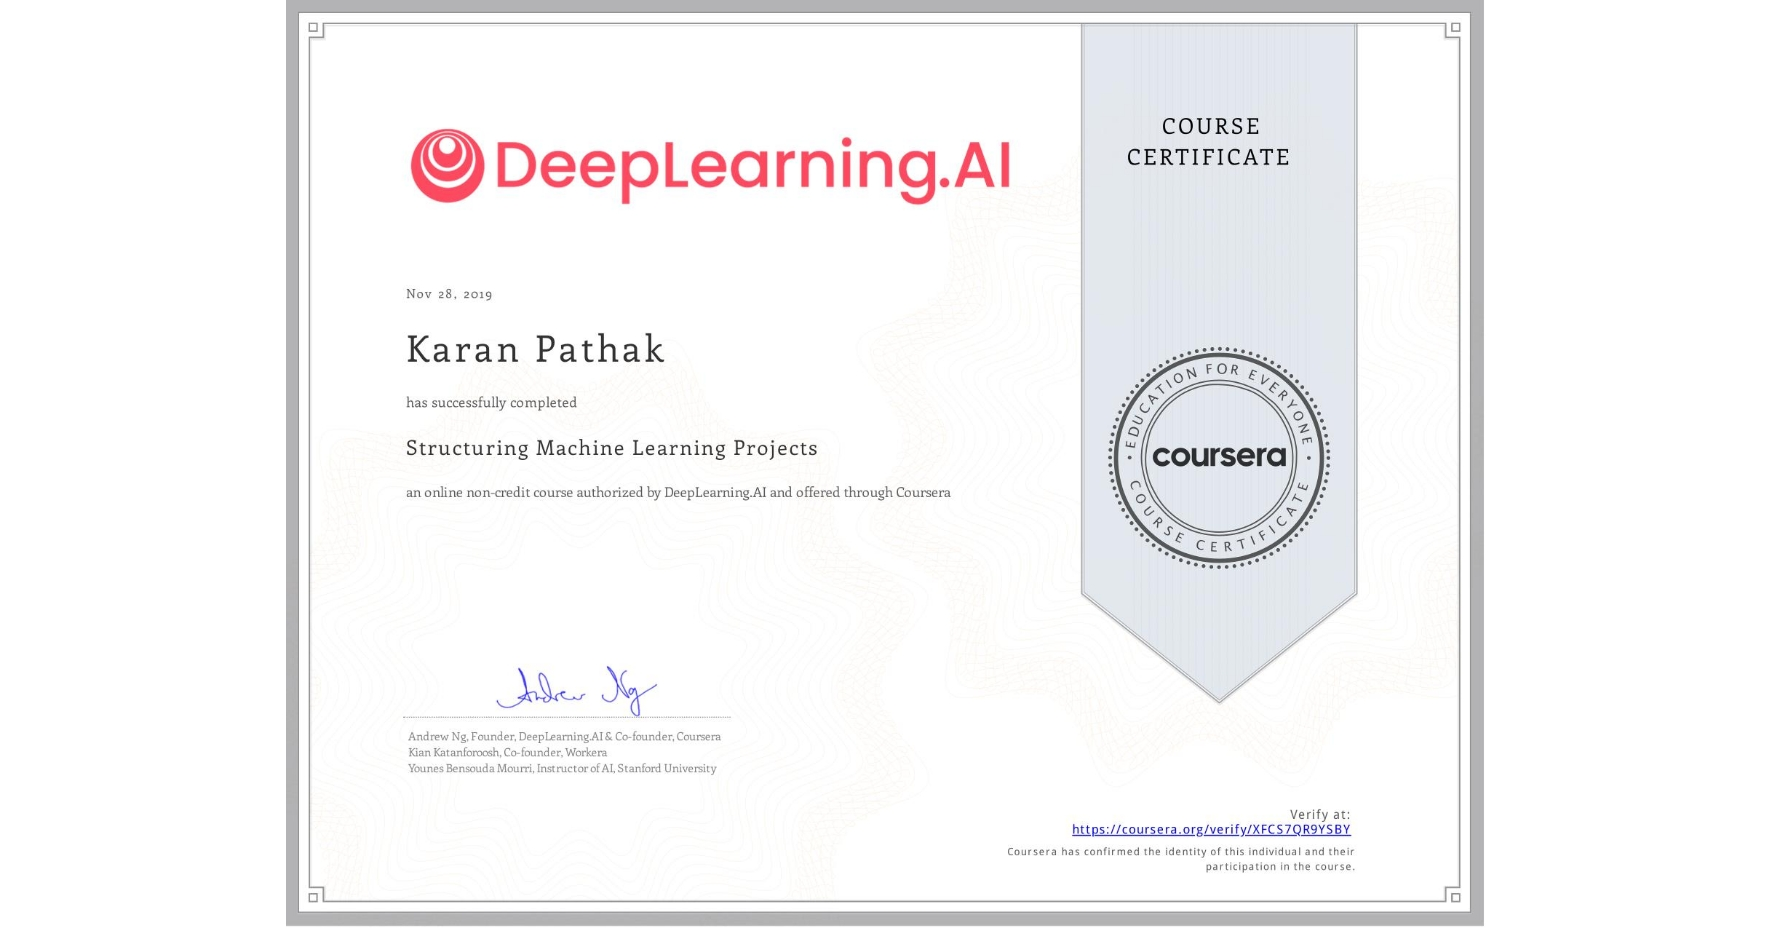 View certificate for Karan Pathak, Structuring Machine Learning Projects, an online non-credit course authorized by DeepLearning.AI and offered through Coursera